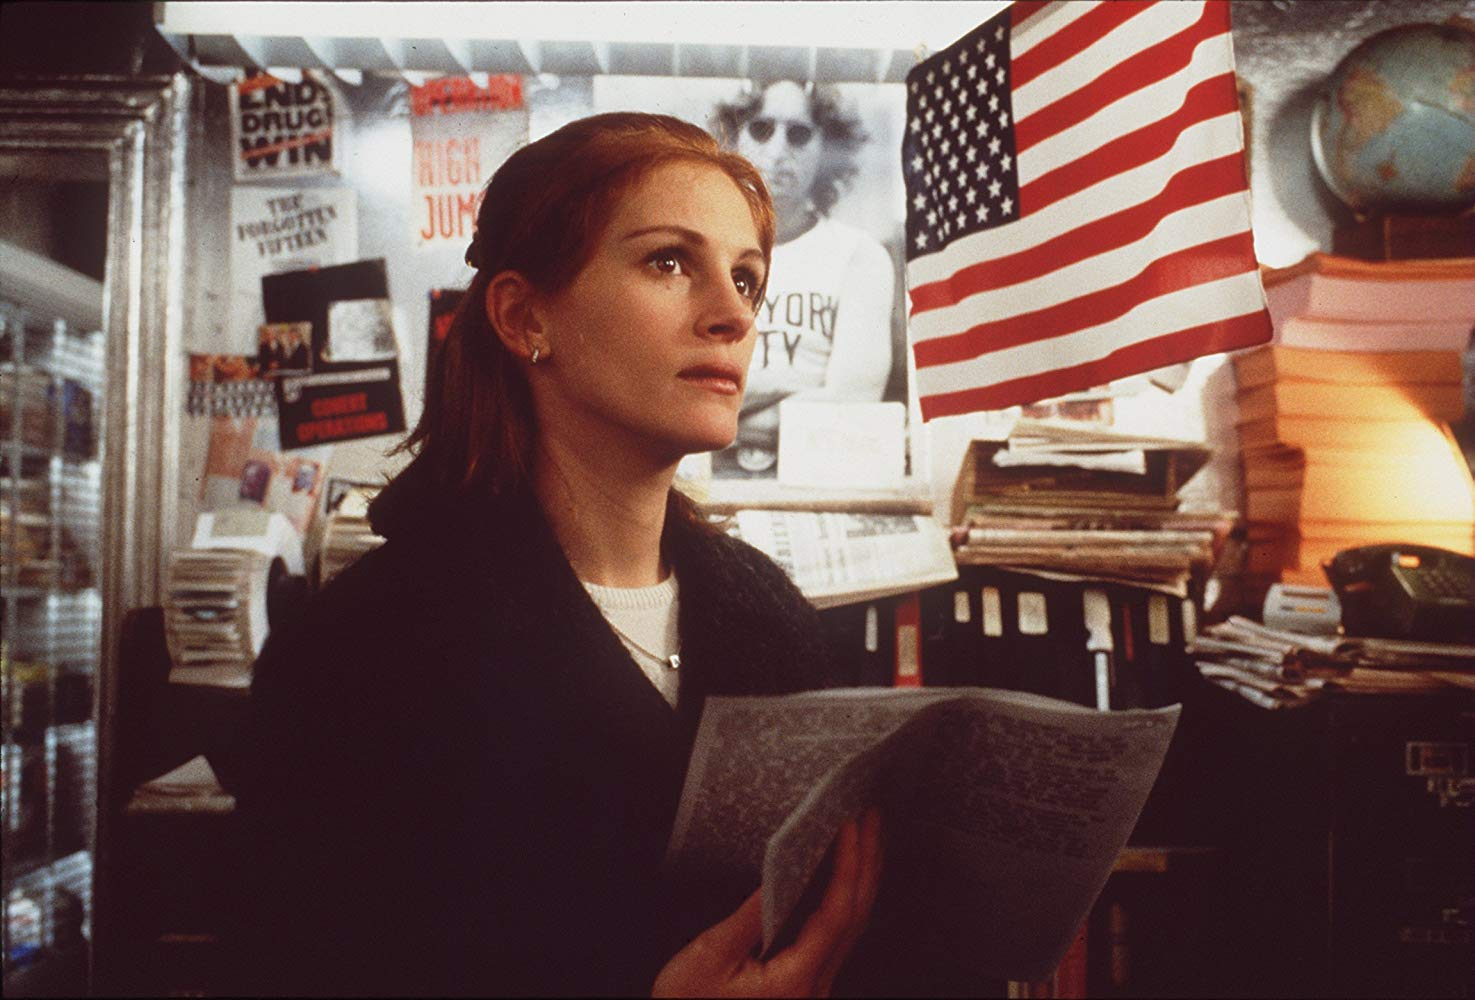 Justice Department lawyer Julia Roberts has difficulty believing Mel's wacky theories in Conspiracy Theory (1997)